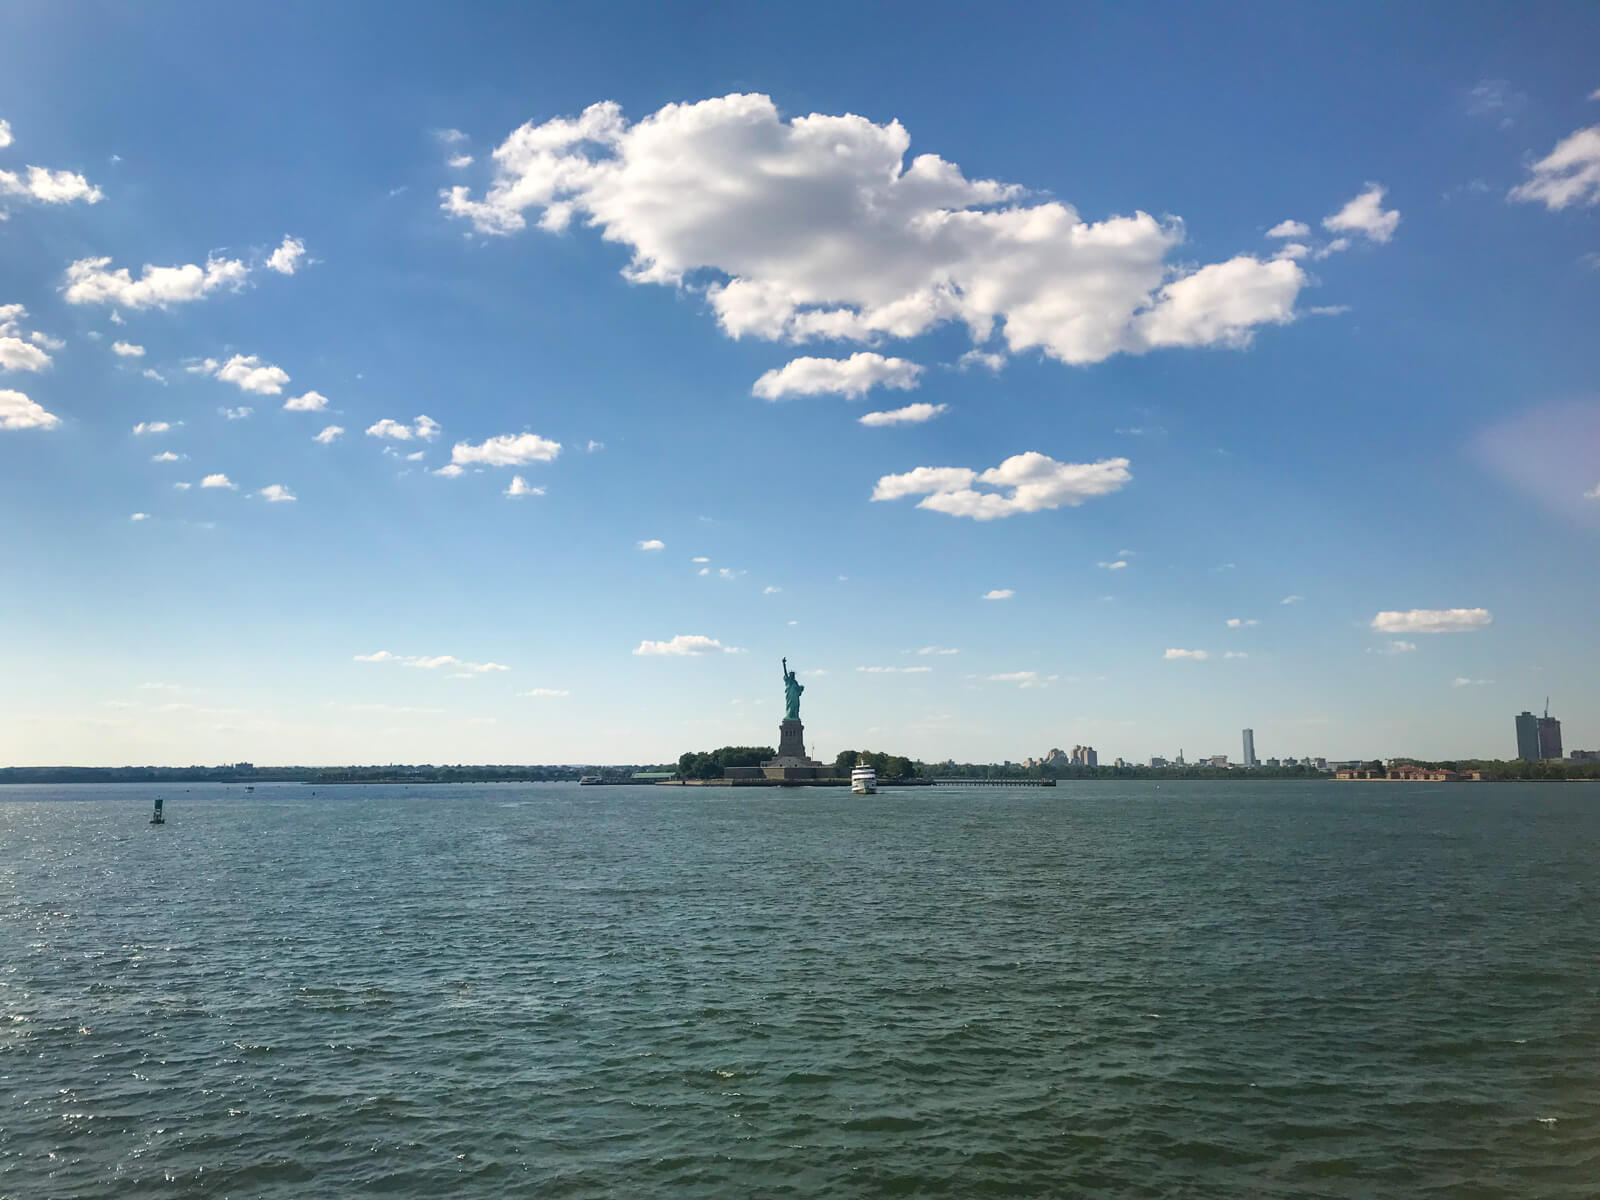 A view from a ferry of the Statue of Liberty, with a lot of the ocean visible around it. The sky is blue and has few clouds